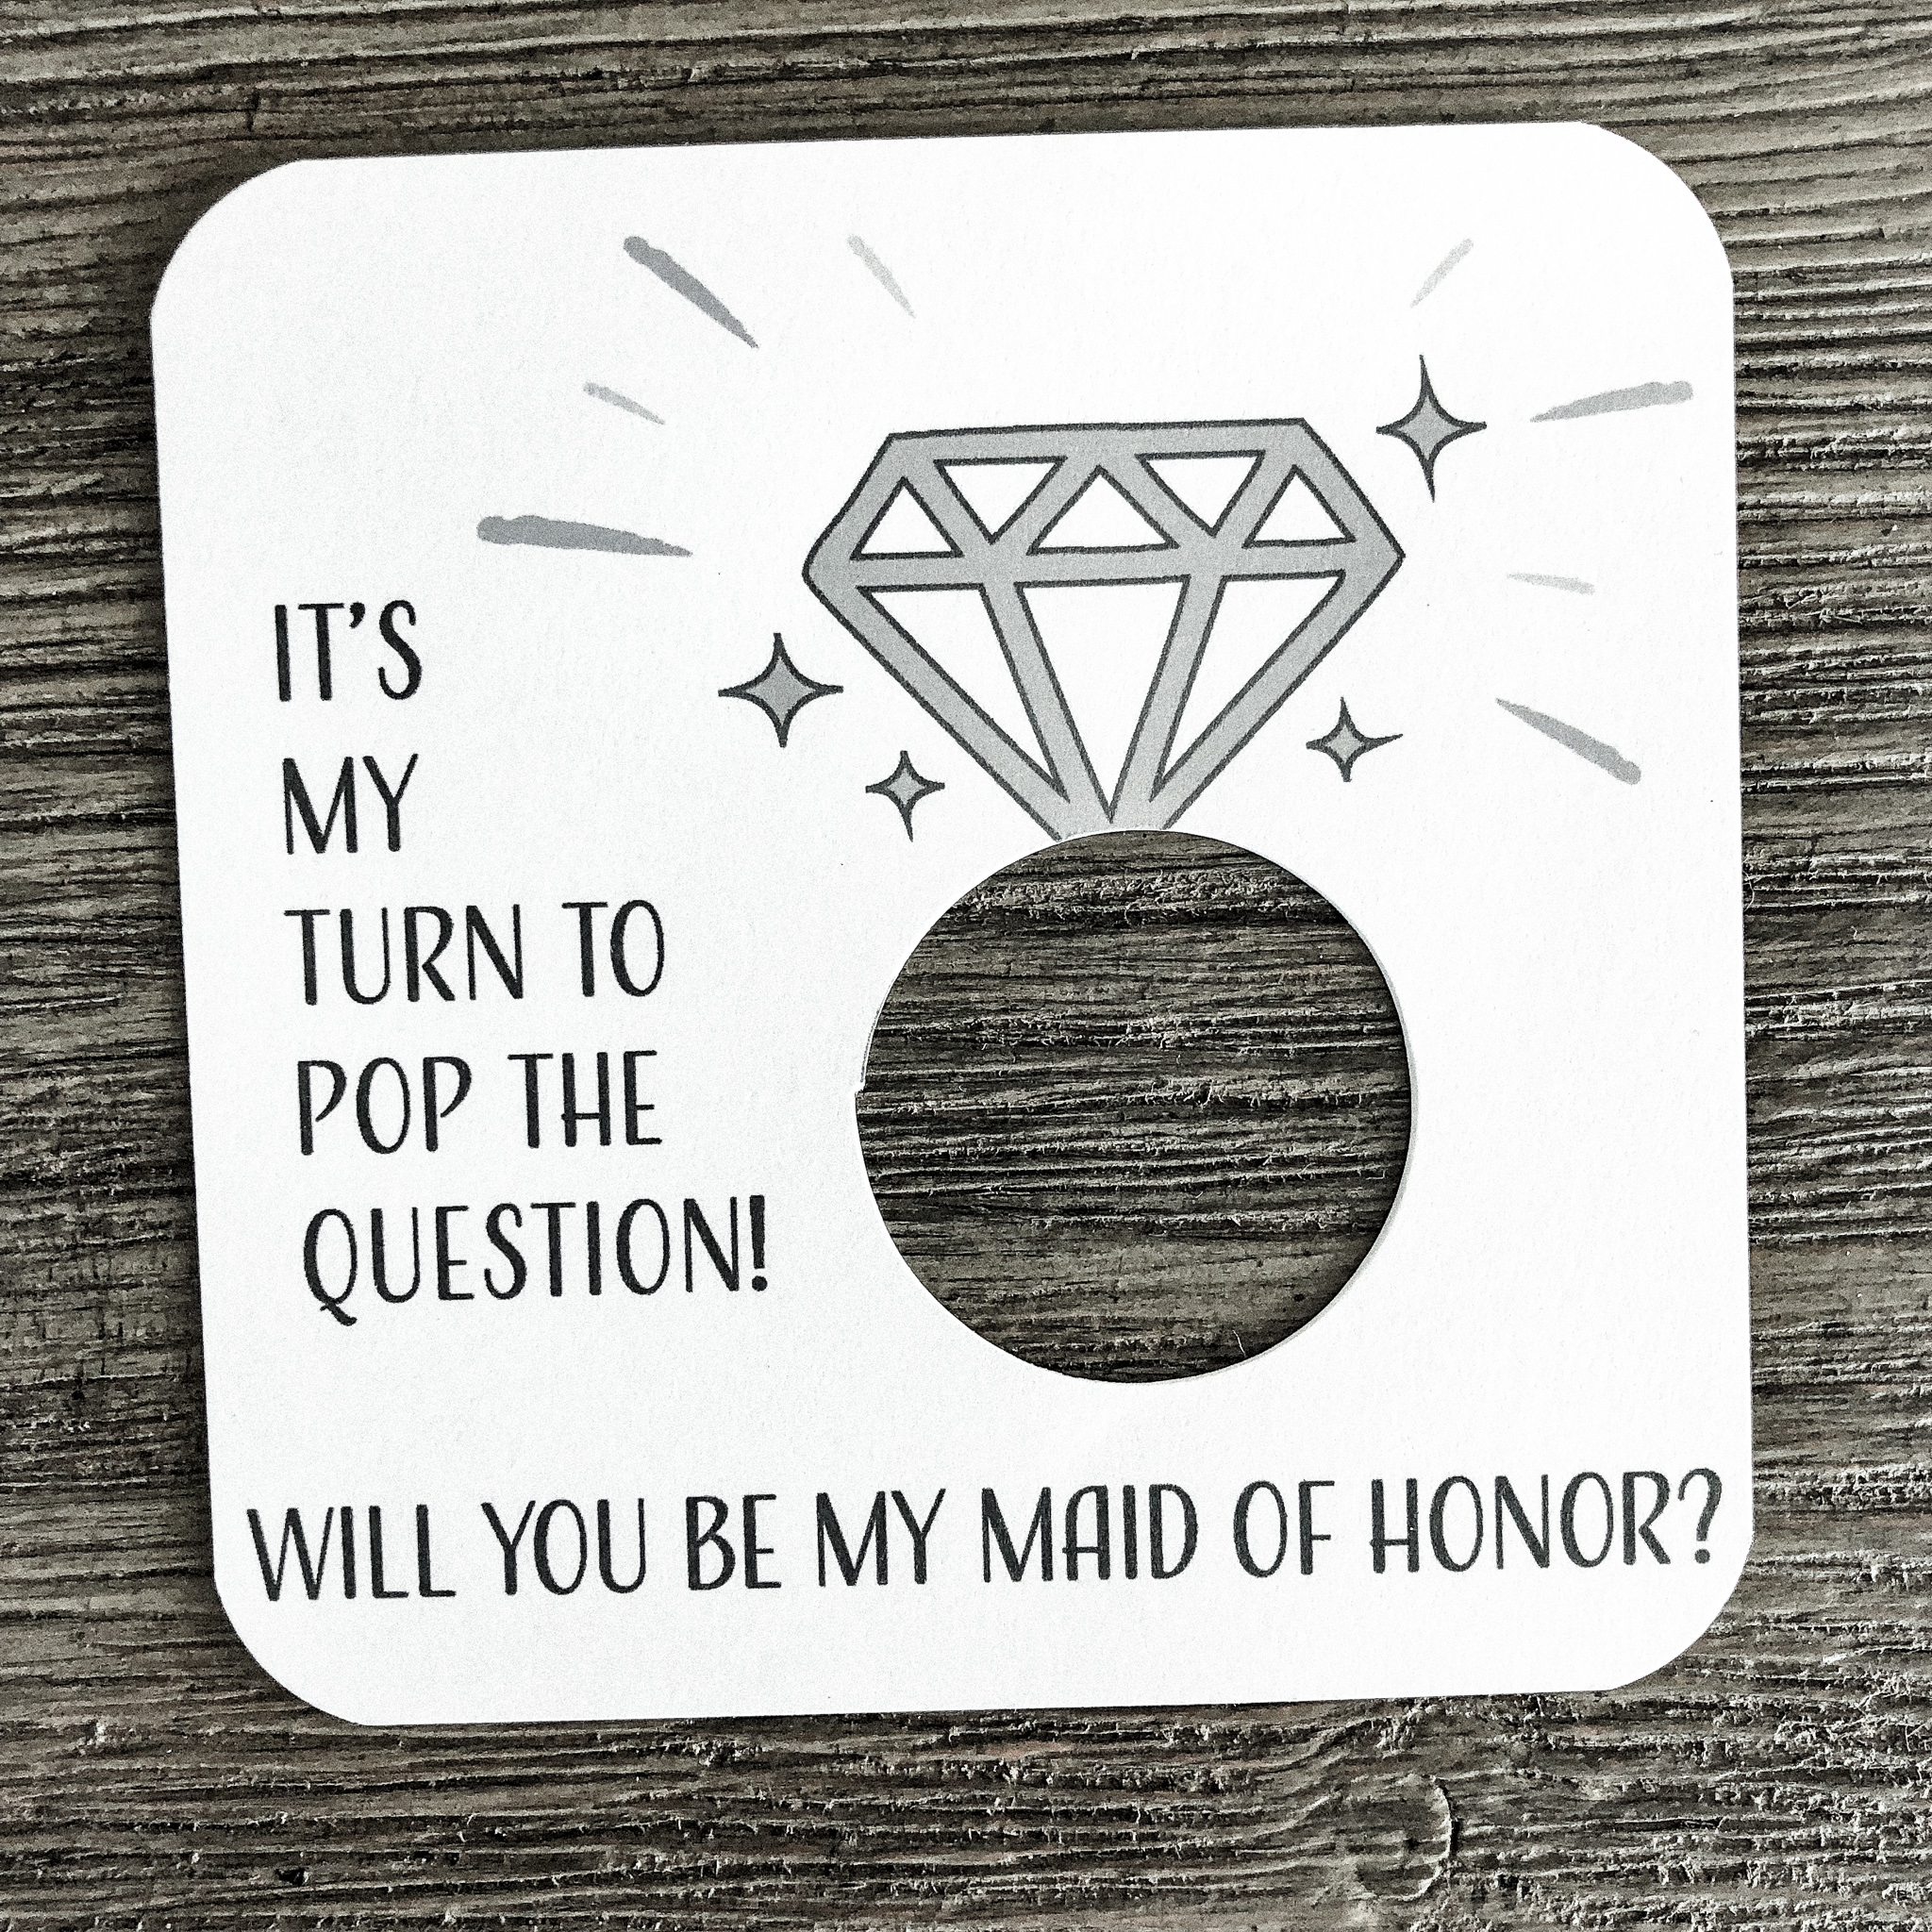 It's my turn to pop the question! Will you be my maid of honor? Plain white card stock